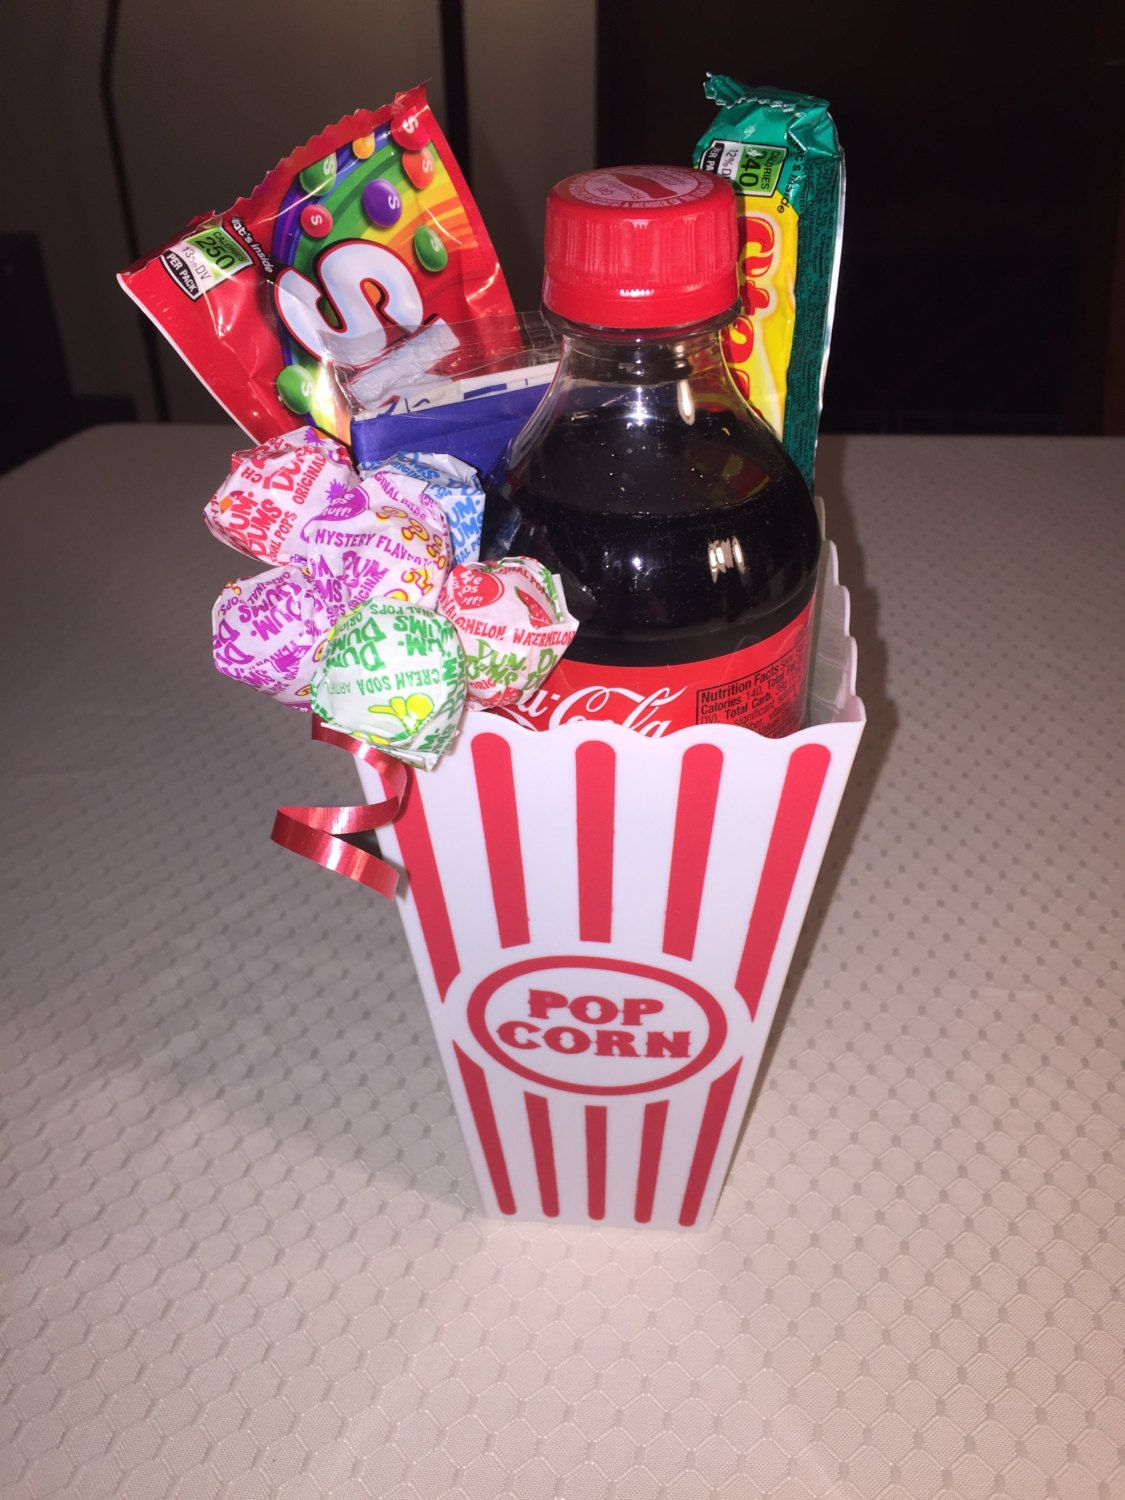 Popcorn Gift Basket By Lechunkeymonkey On Etsy Holidays